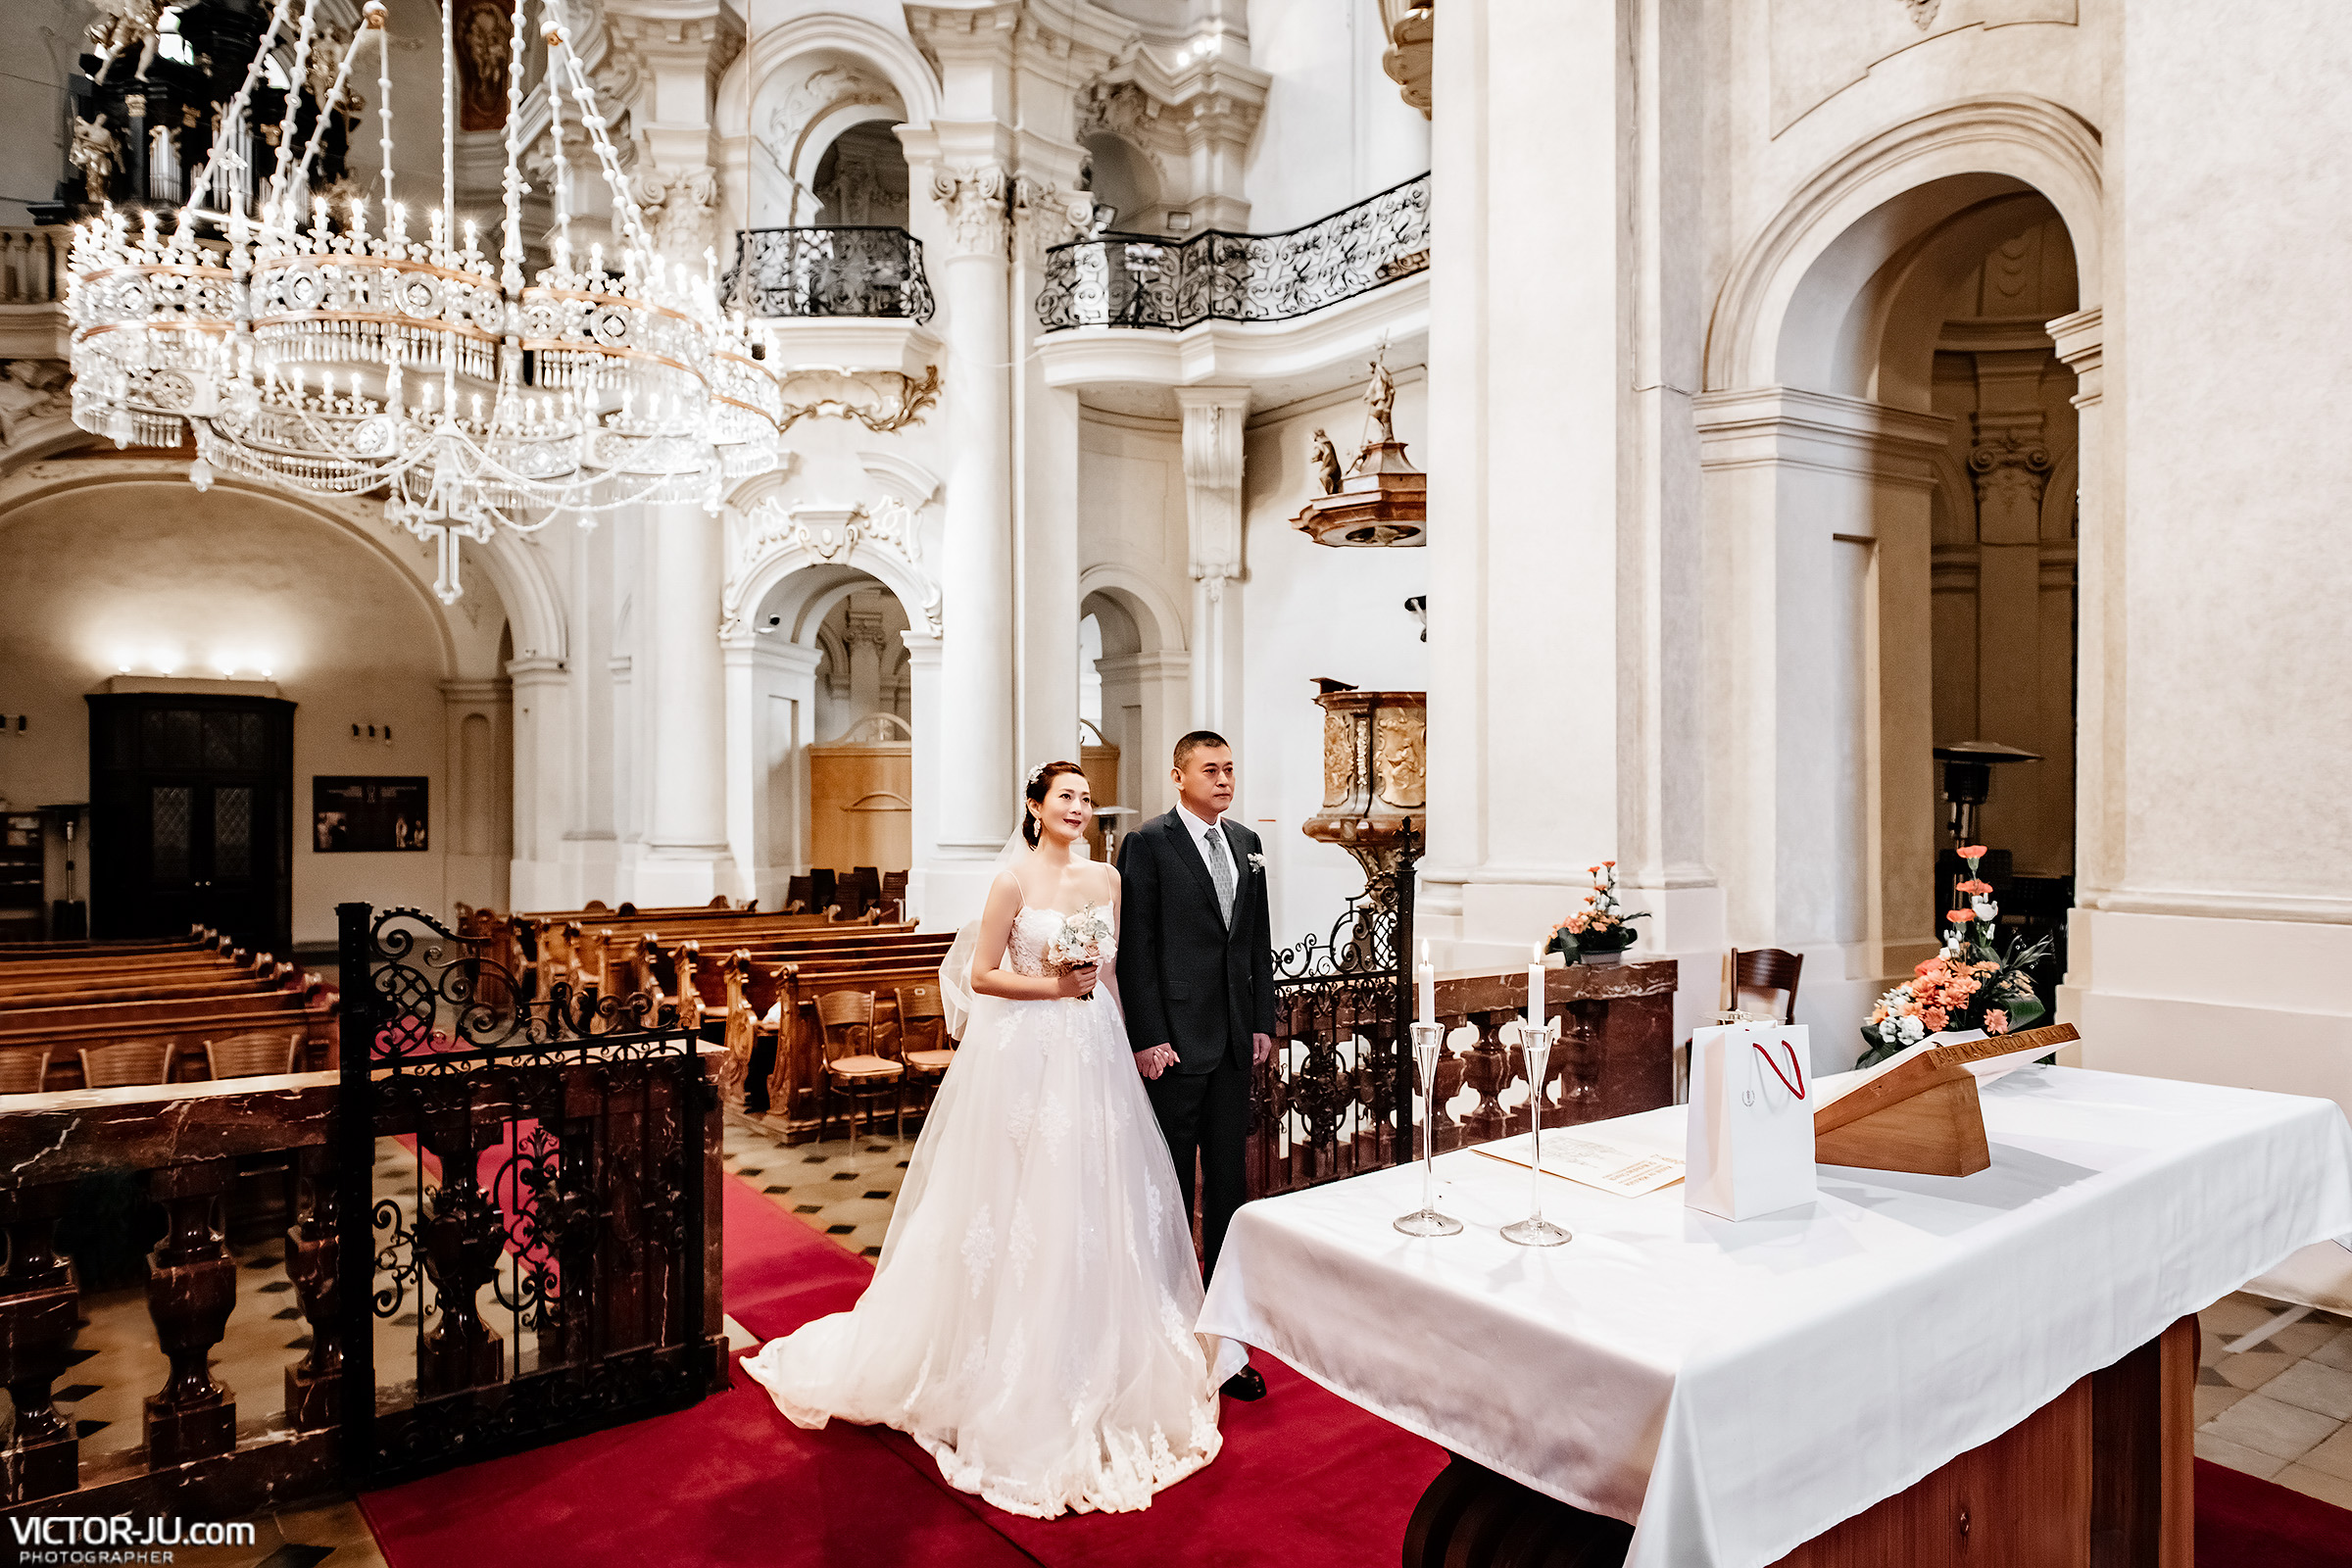 Wedding photoshoot in Prague Saint Nicolas Church